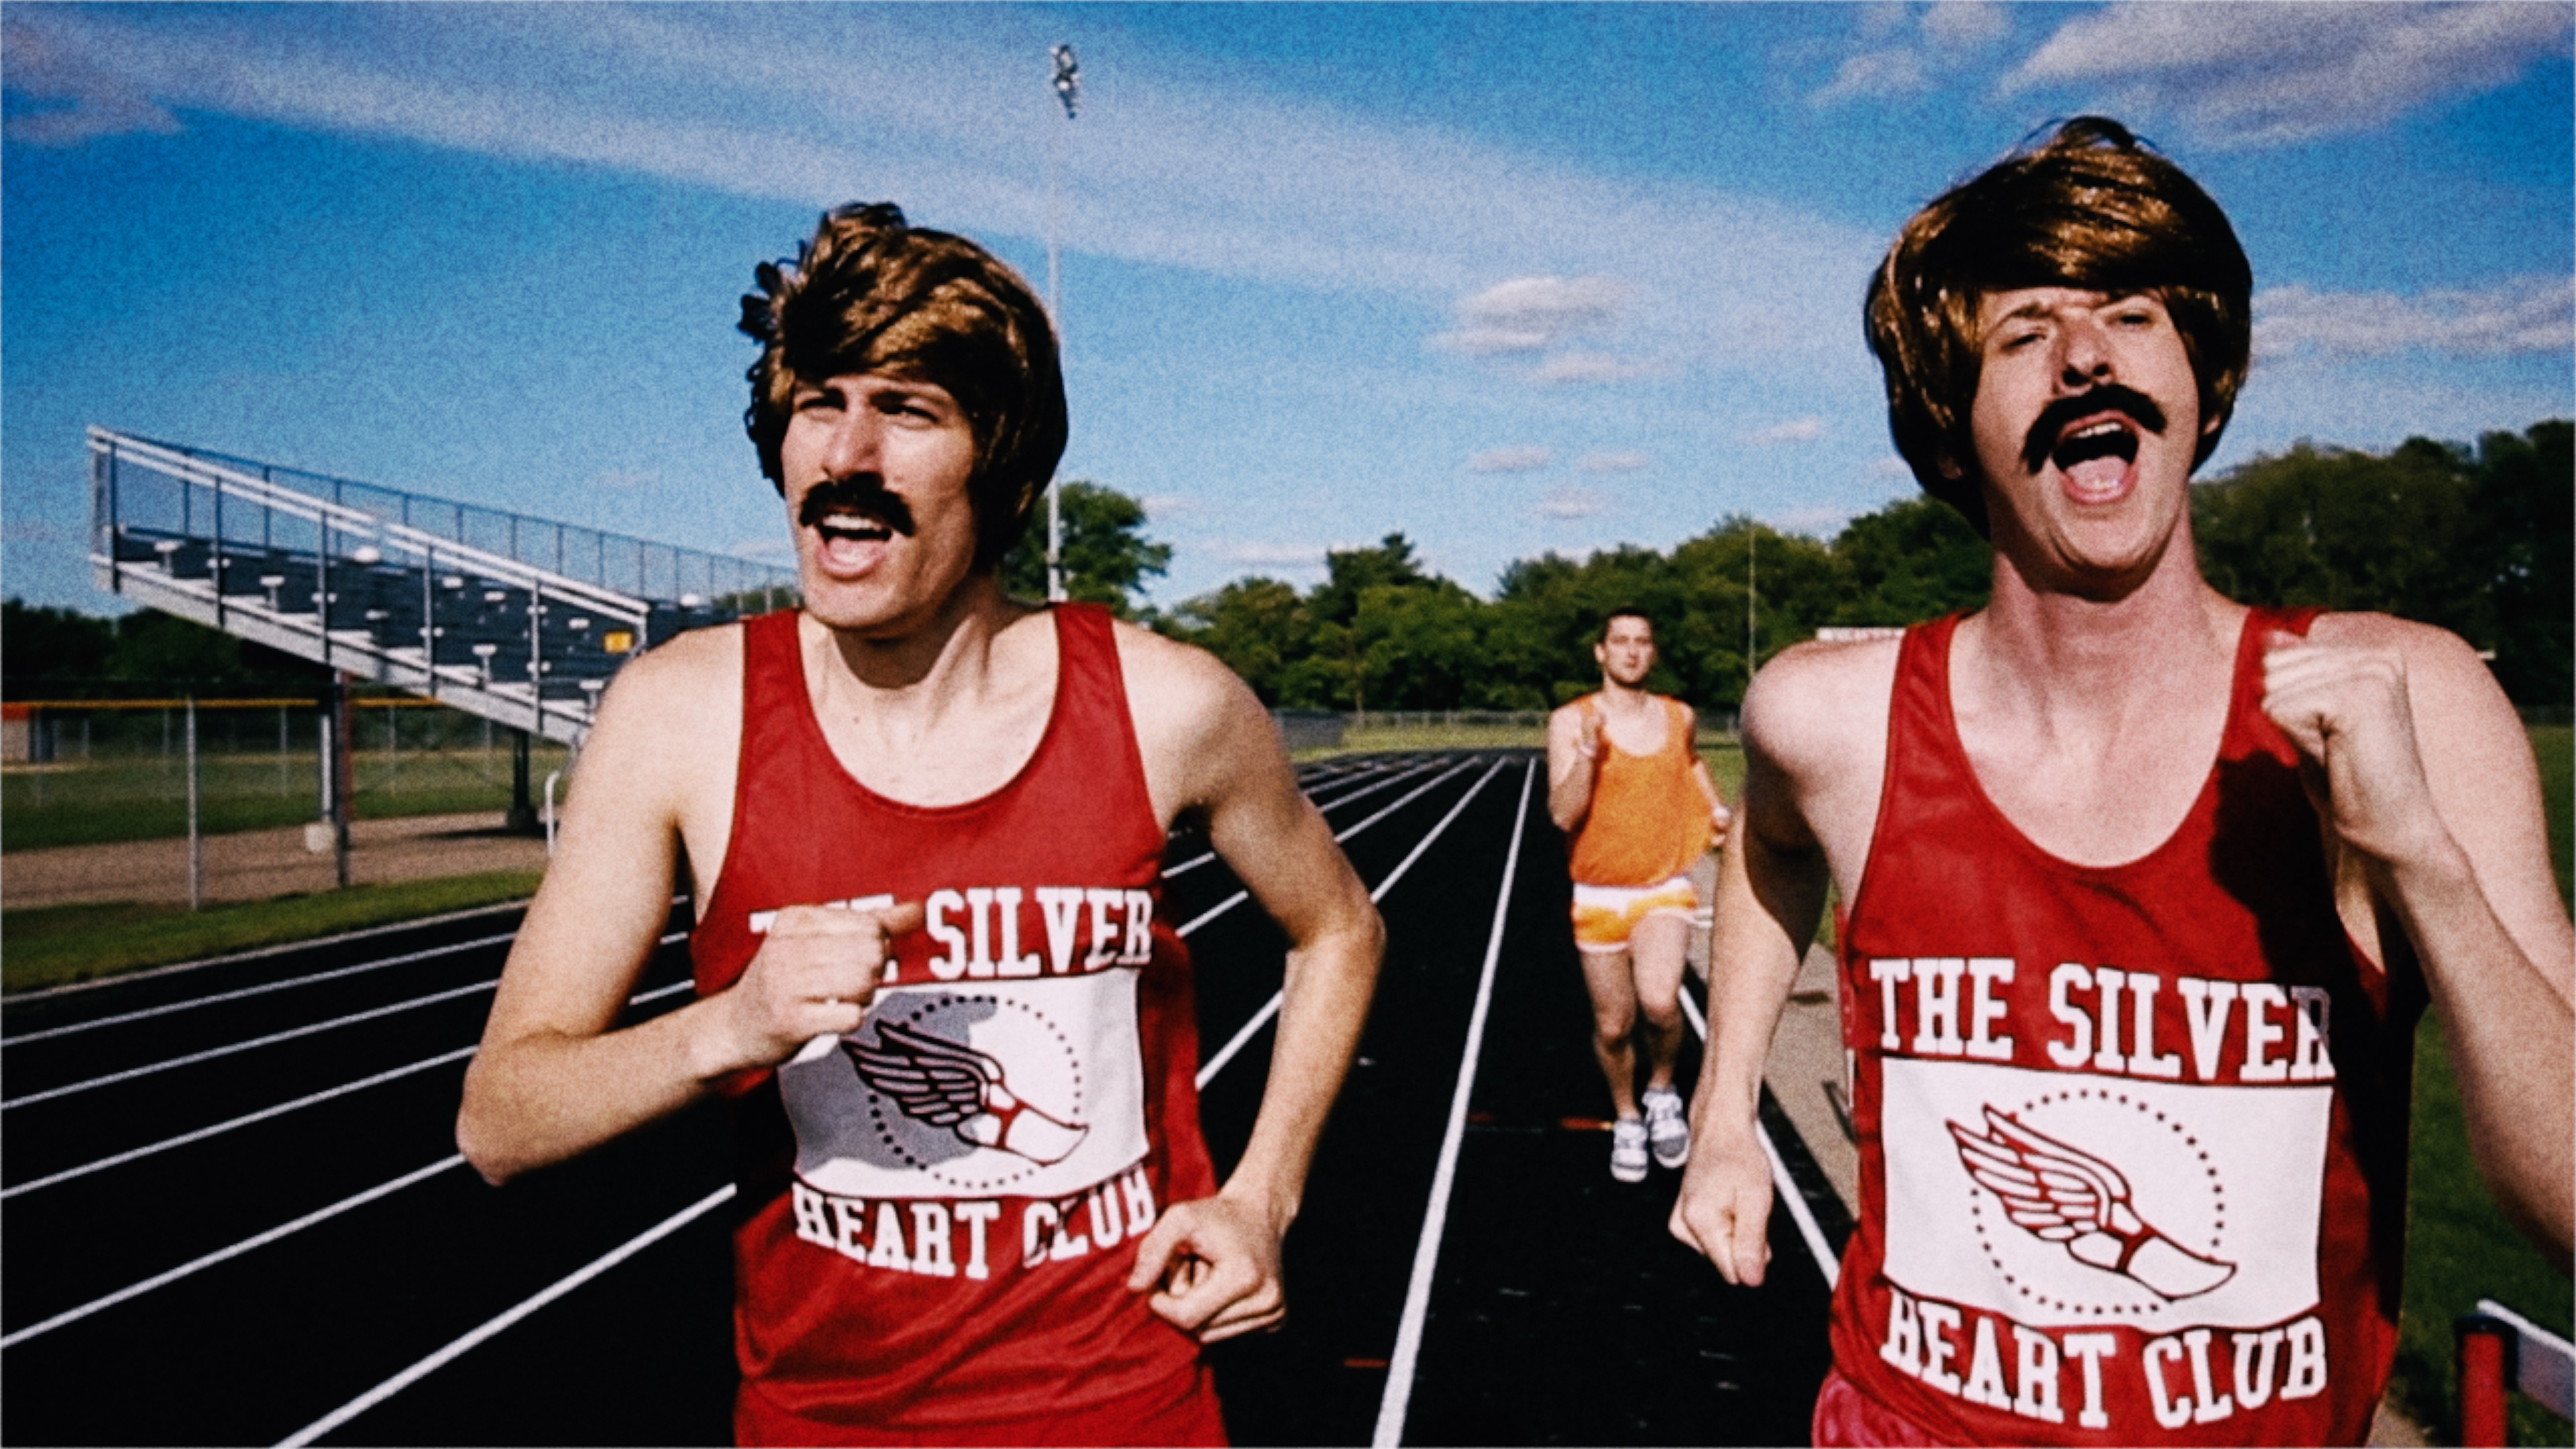 Track runners with mustaches